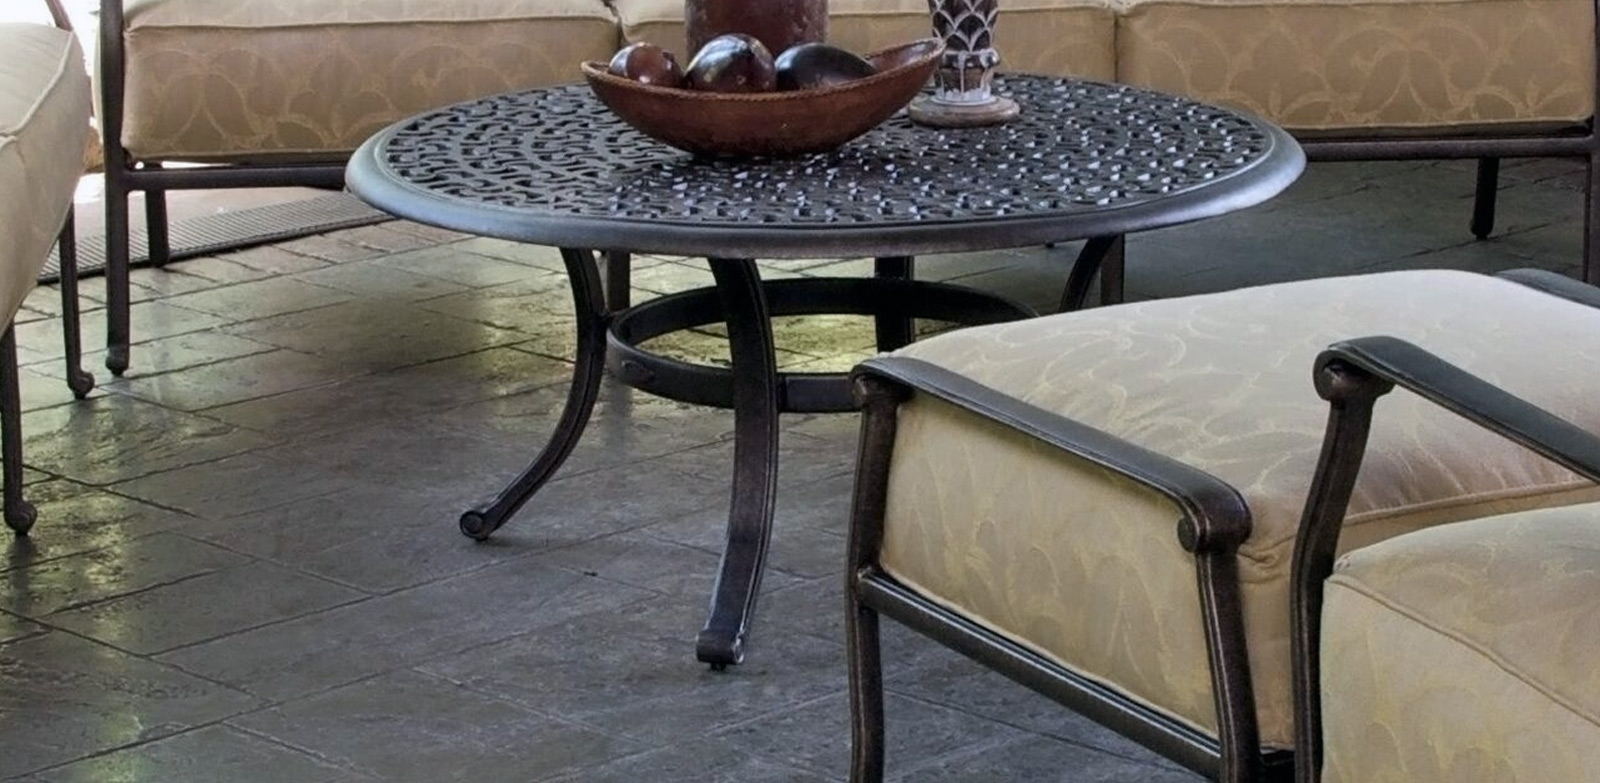 Sienna Tables – Castelle Luxury Outdoor Furniture Throughout Most Up To Date Outdoor Sienna Dining Tables (View 3 of 20)